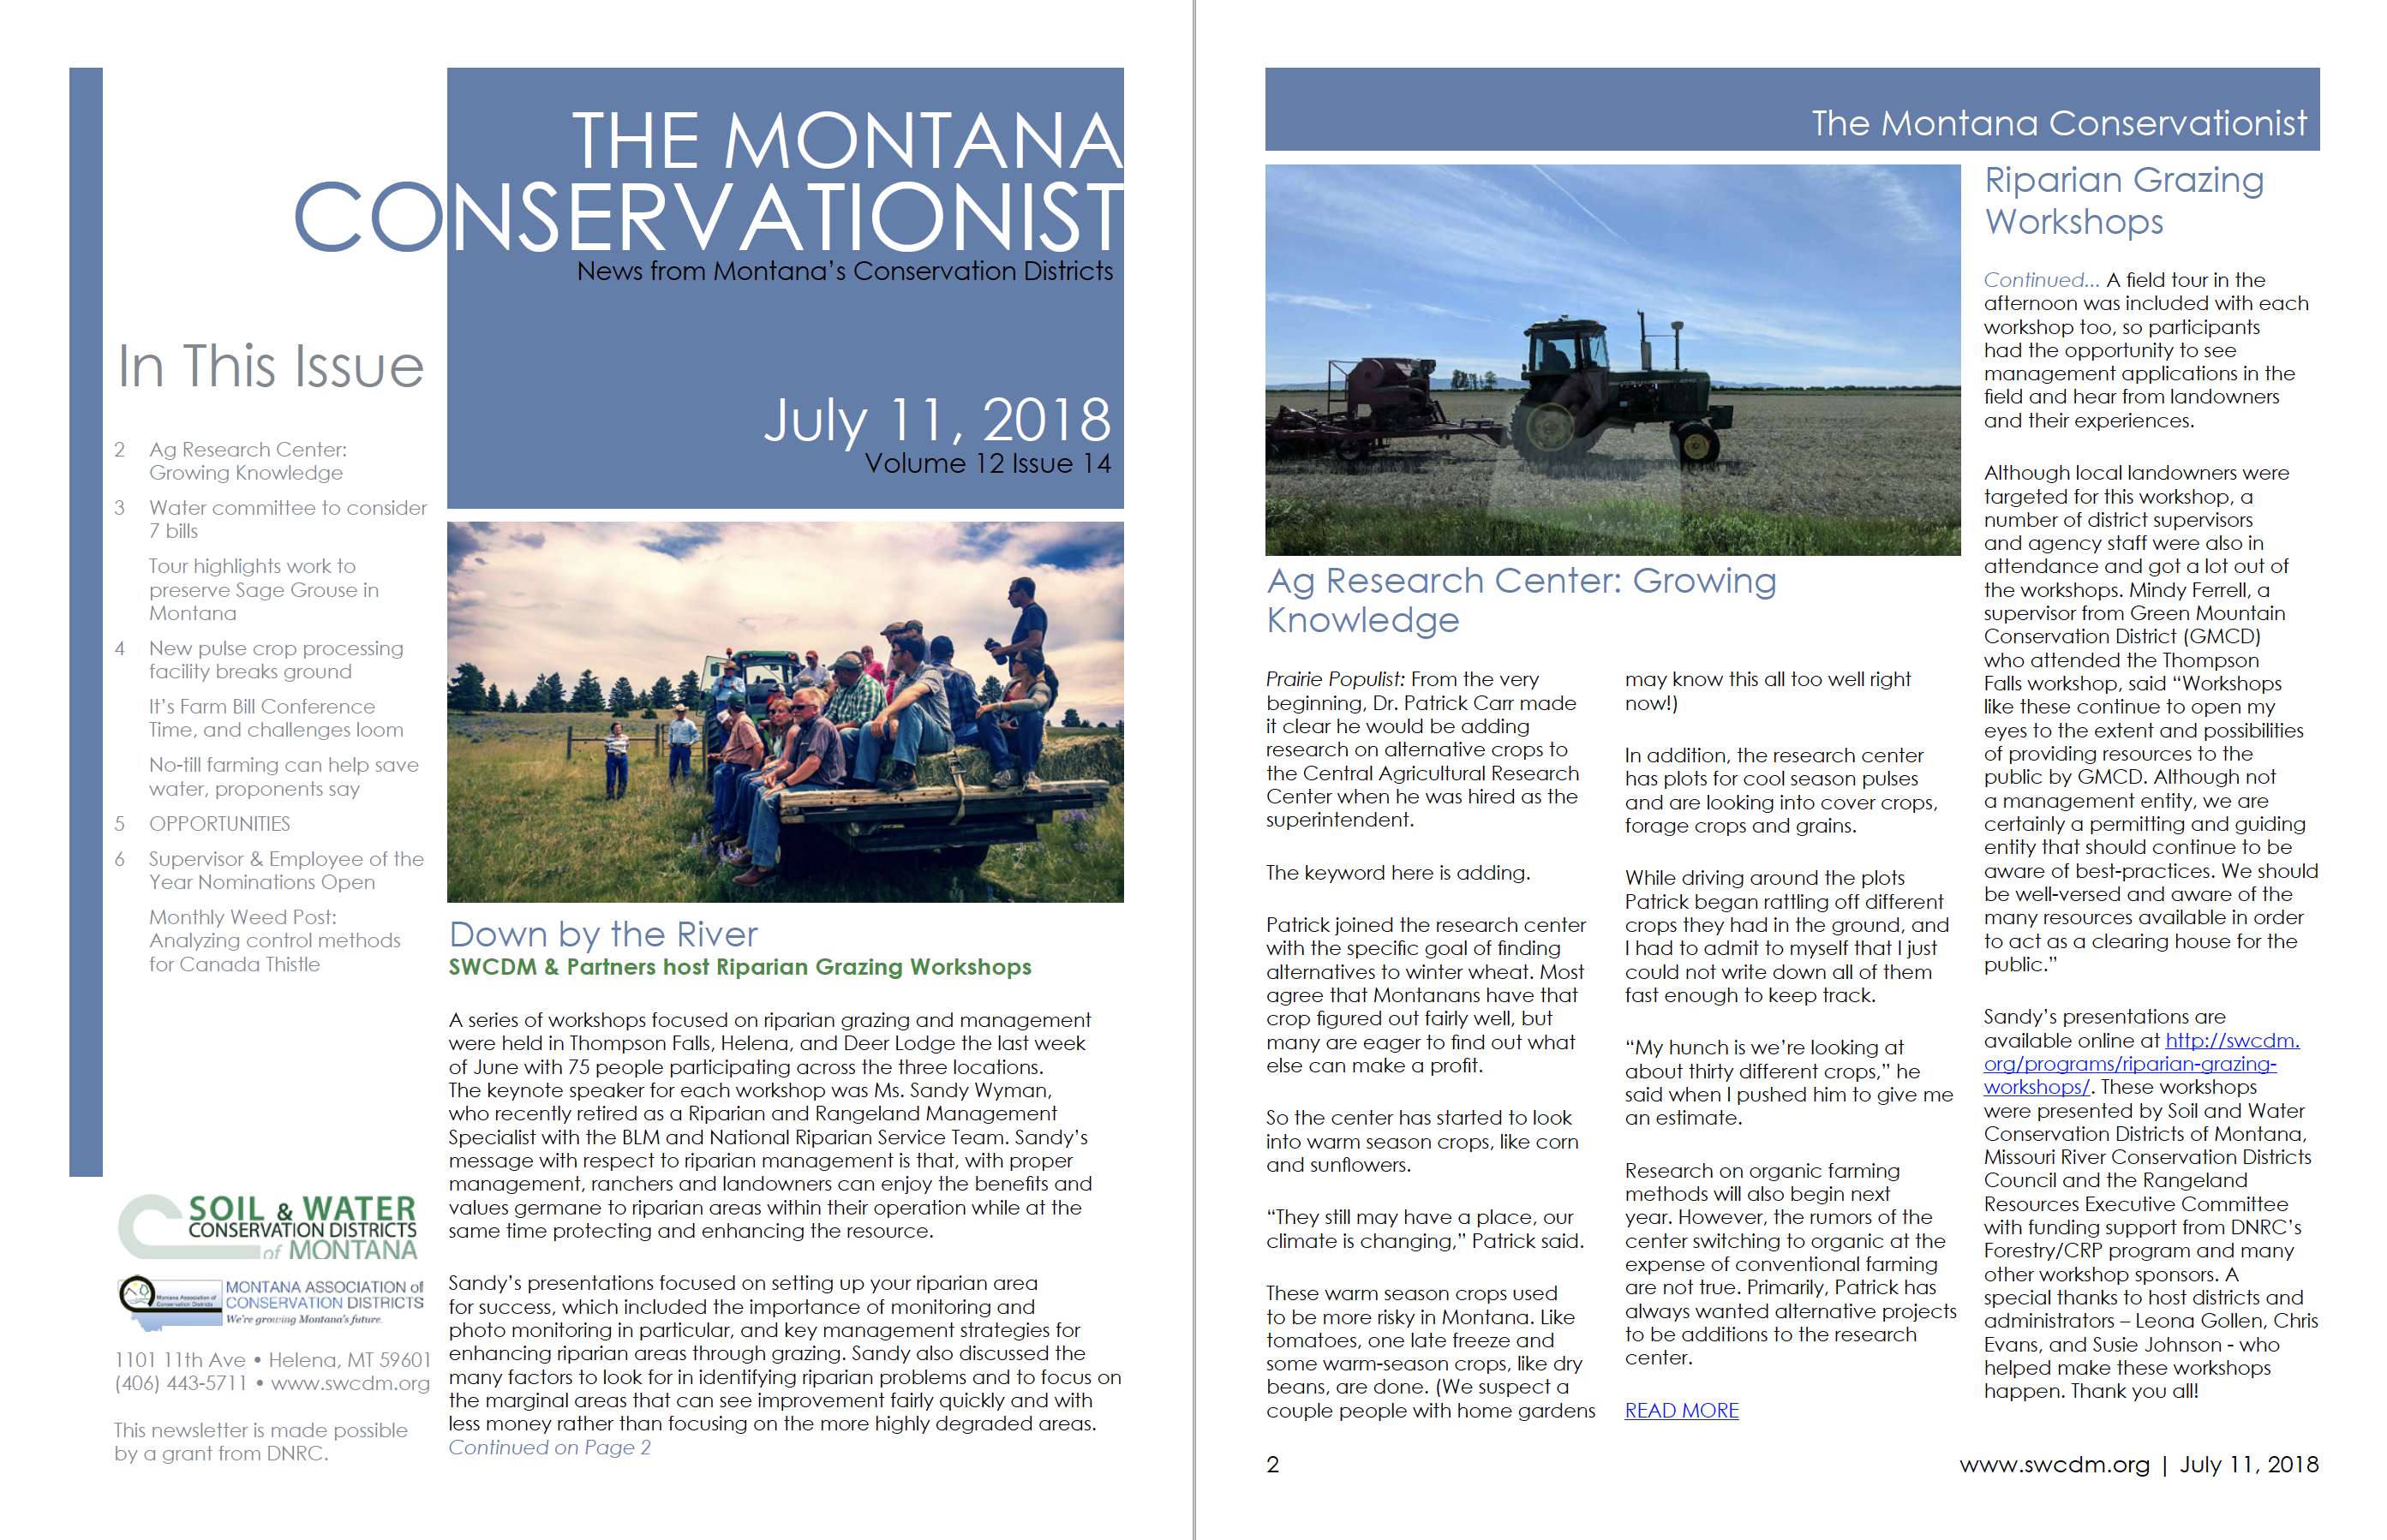 The Montana Conservationist July 11